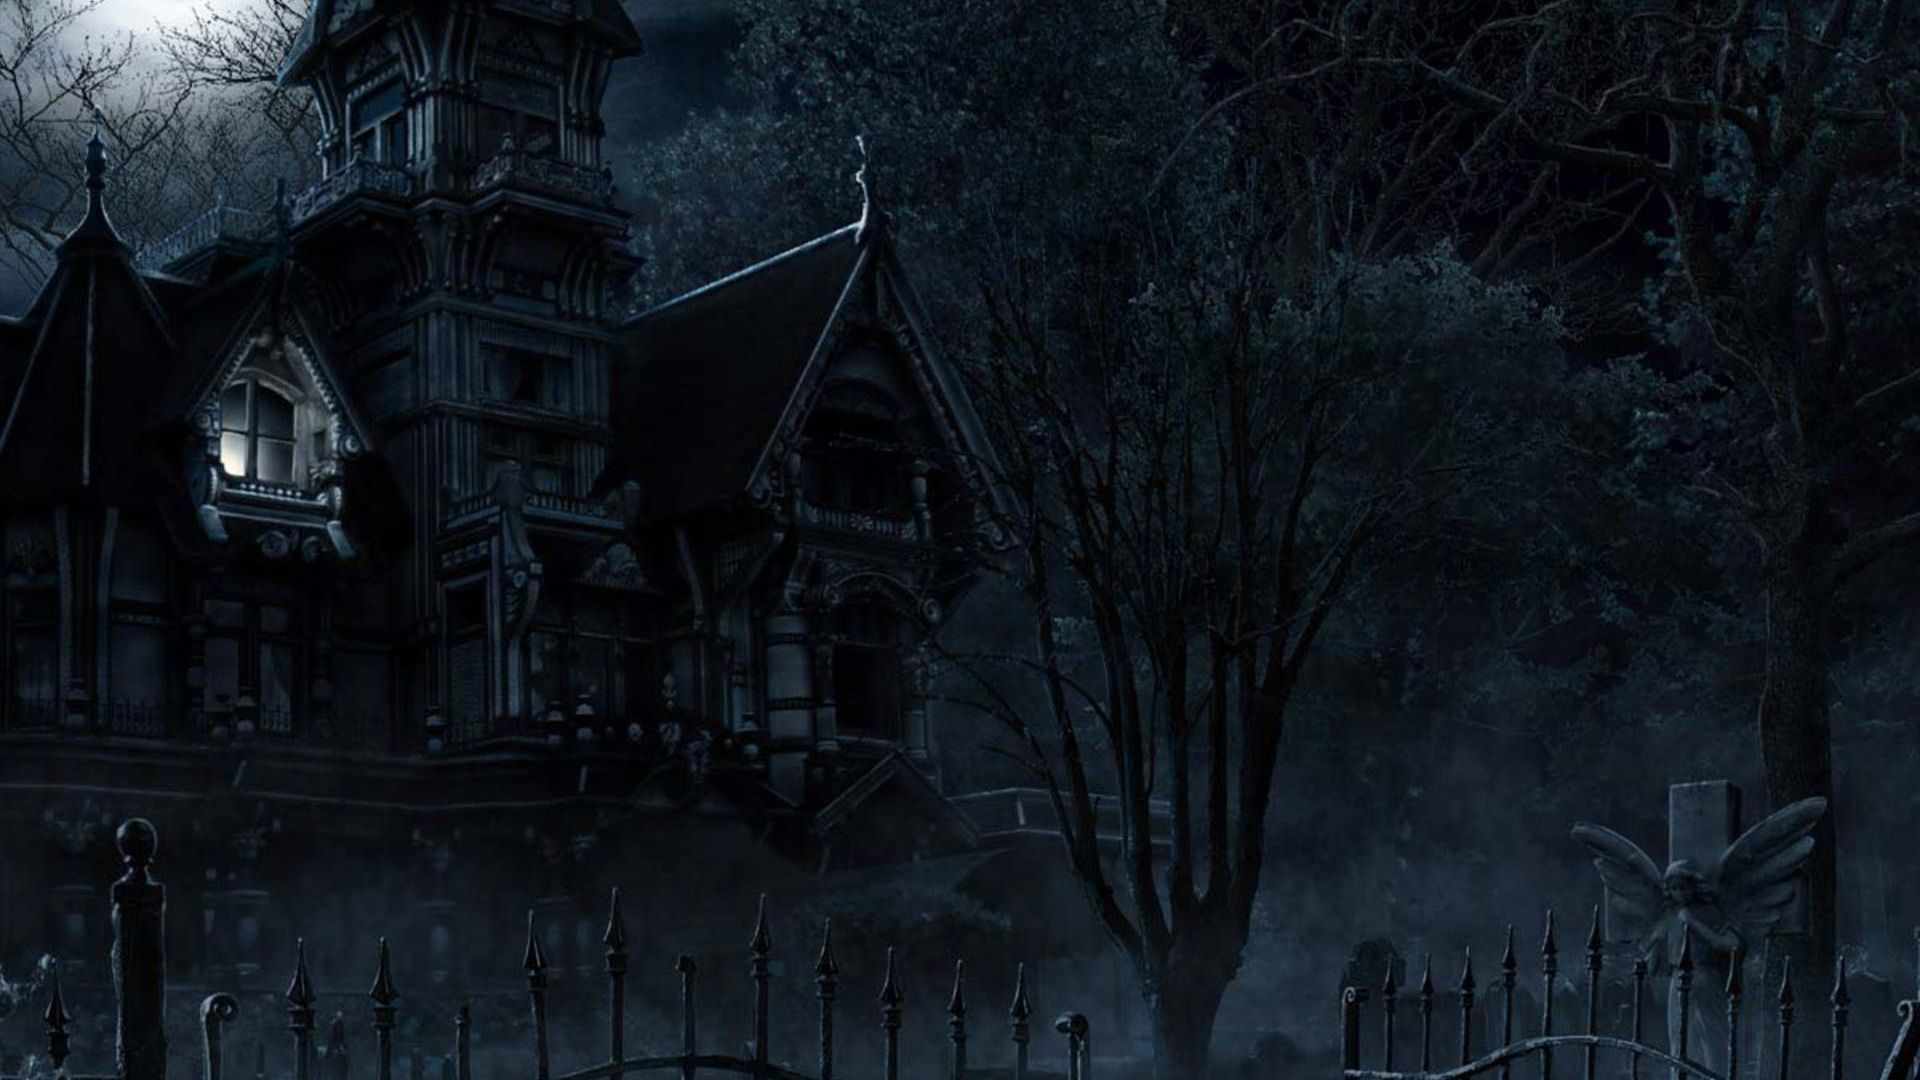 google halloween wallpaper for desktop Halloween Wallpapers 82 1920x1080